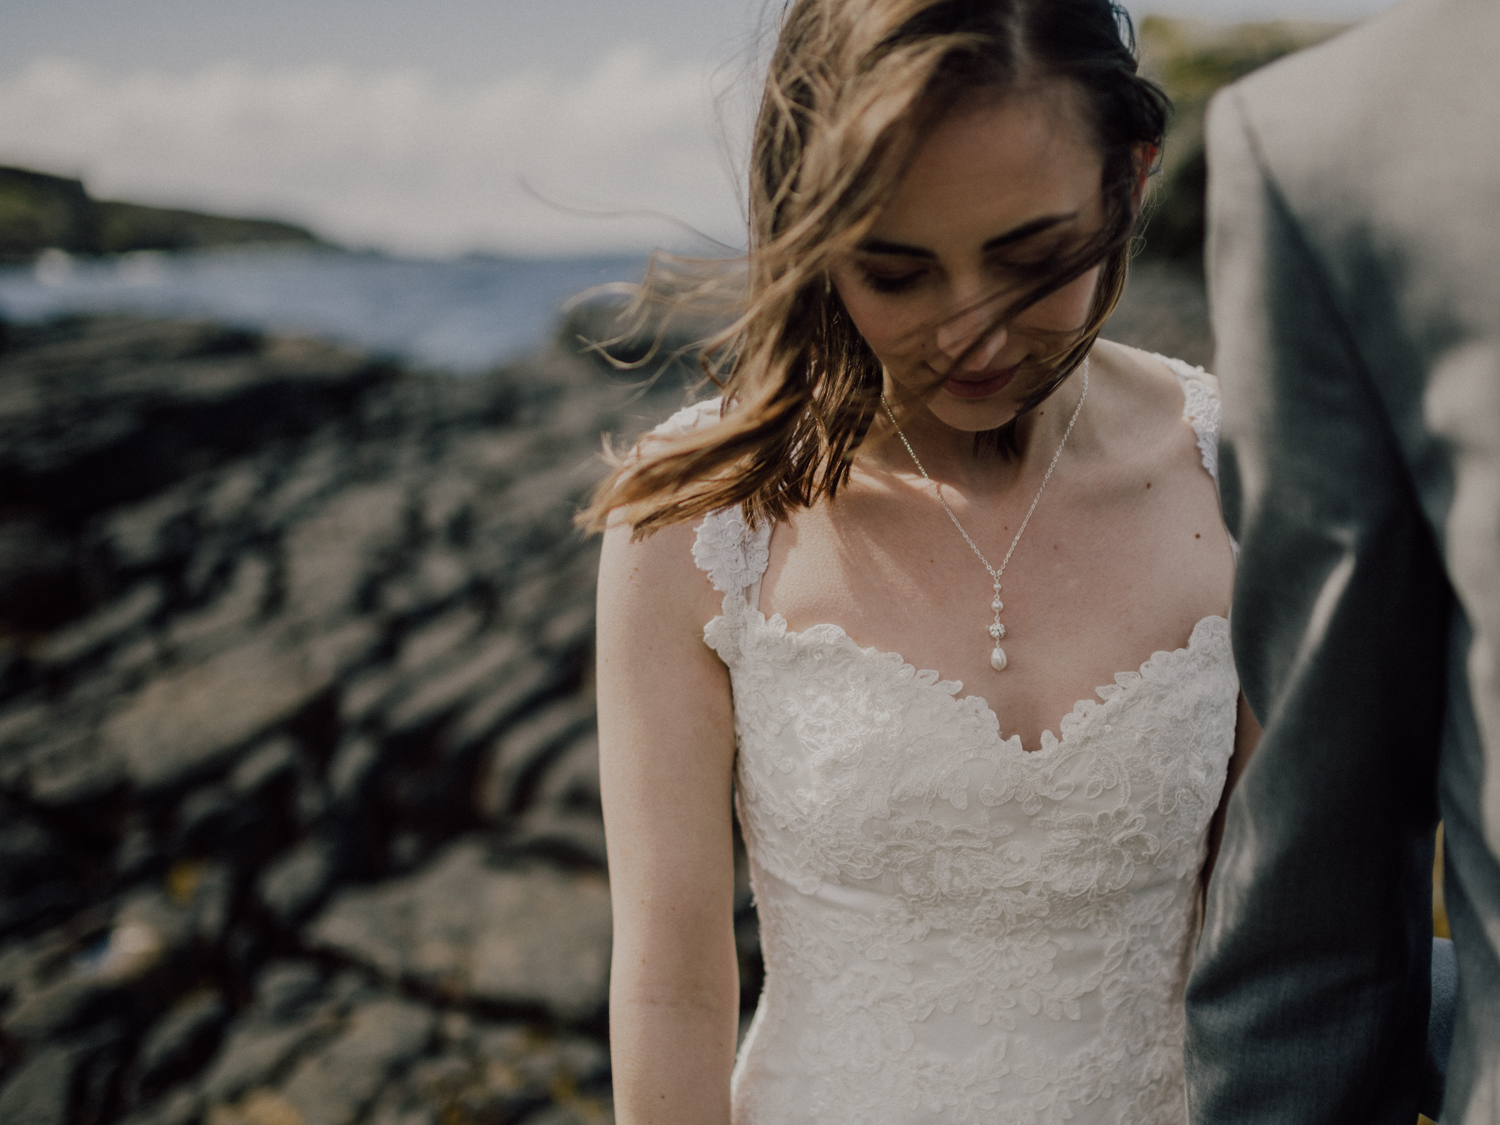 capyture-wedding-photographer-destination-elopement-isle-skye-scotland-391